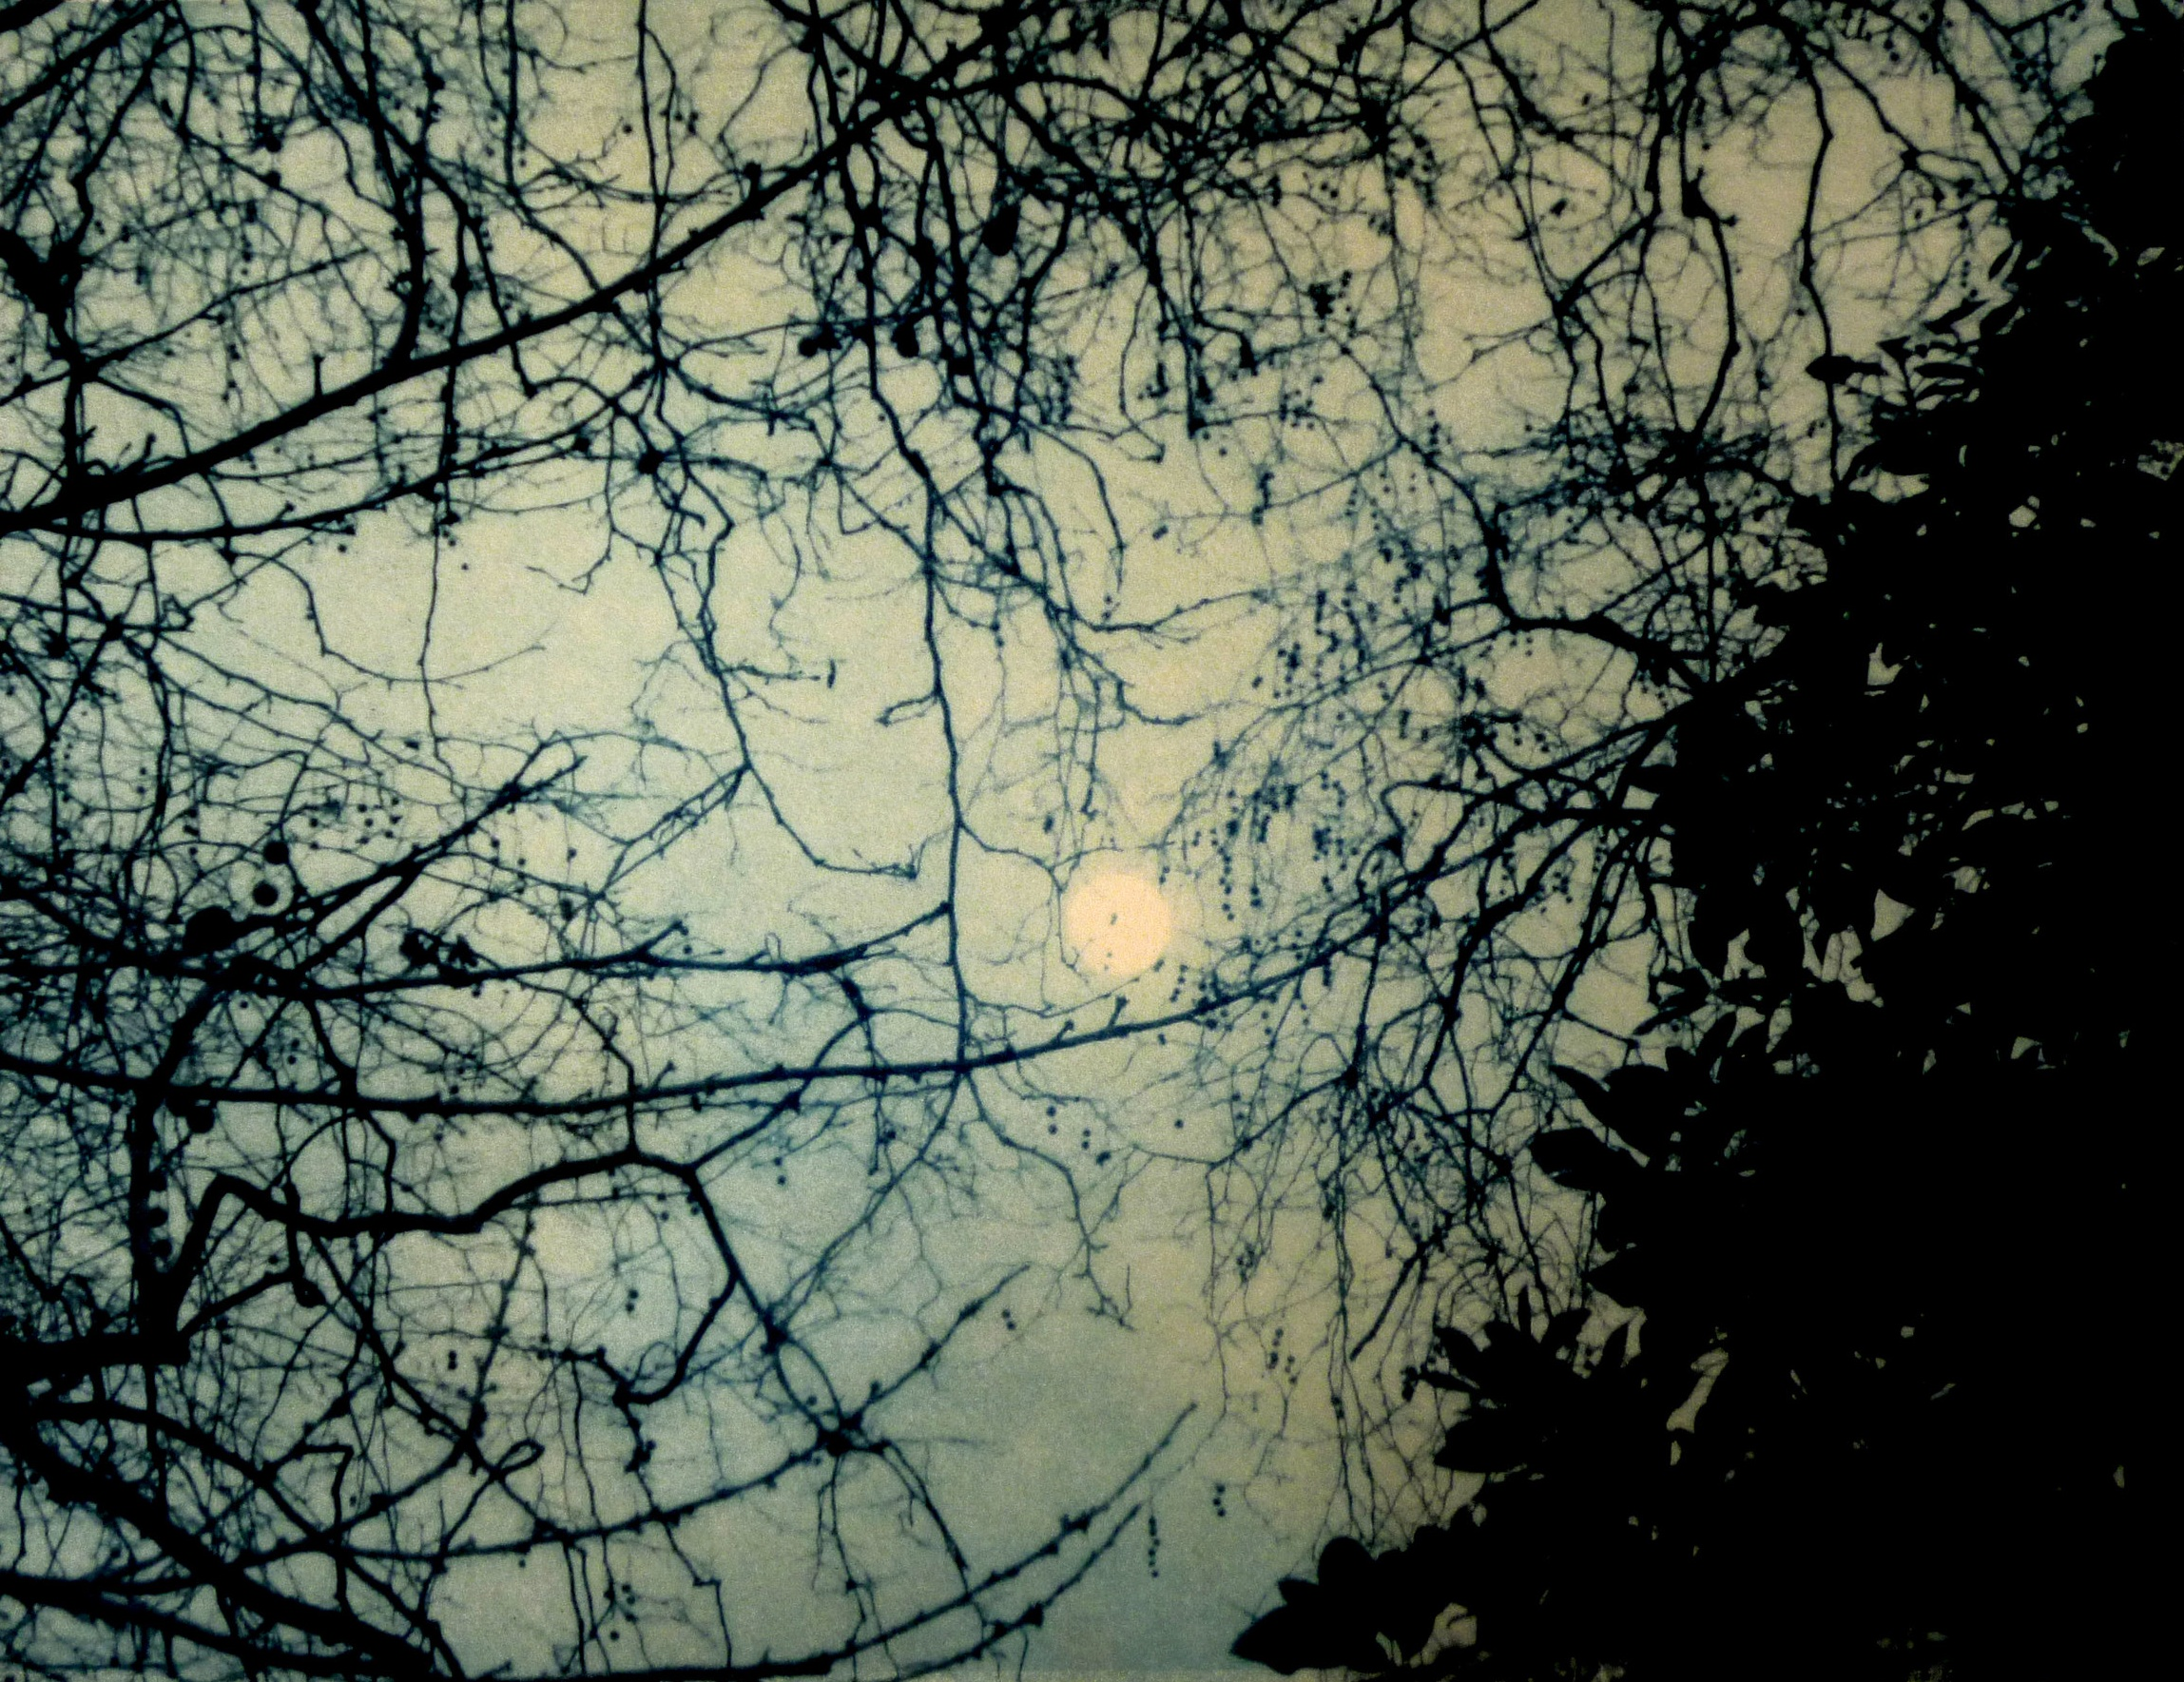 Title: Moon in Tree  Size: 28 x 36 cm  Medium: Solar etching (edition of 20)  Price: £240 fr   Buy Now